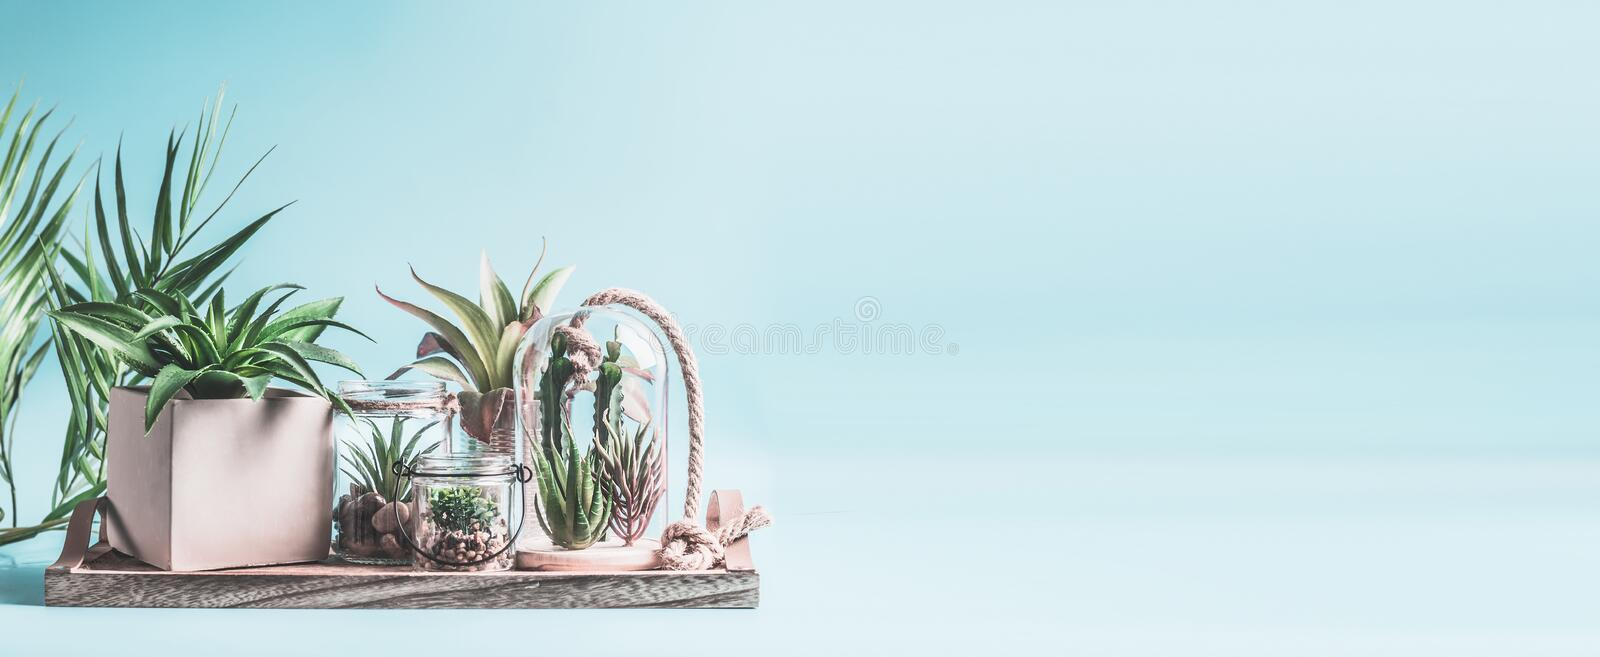 Home succulent garden. Green house plants in pots, glass terrarium and jars on table at pastel pink background. Various succulent royalty free stock photo